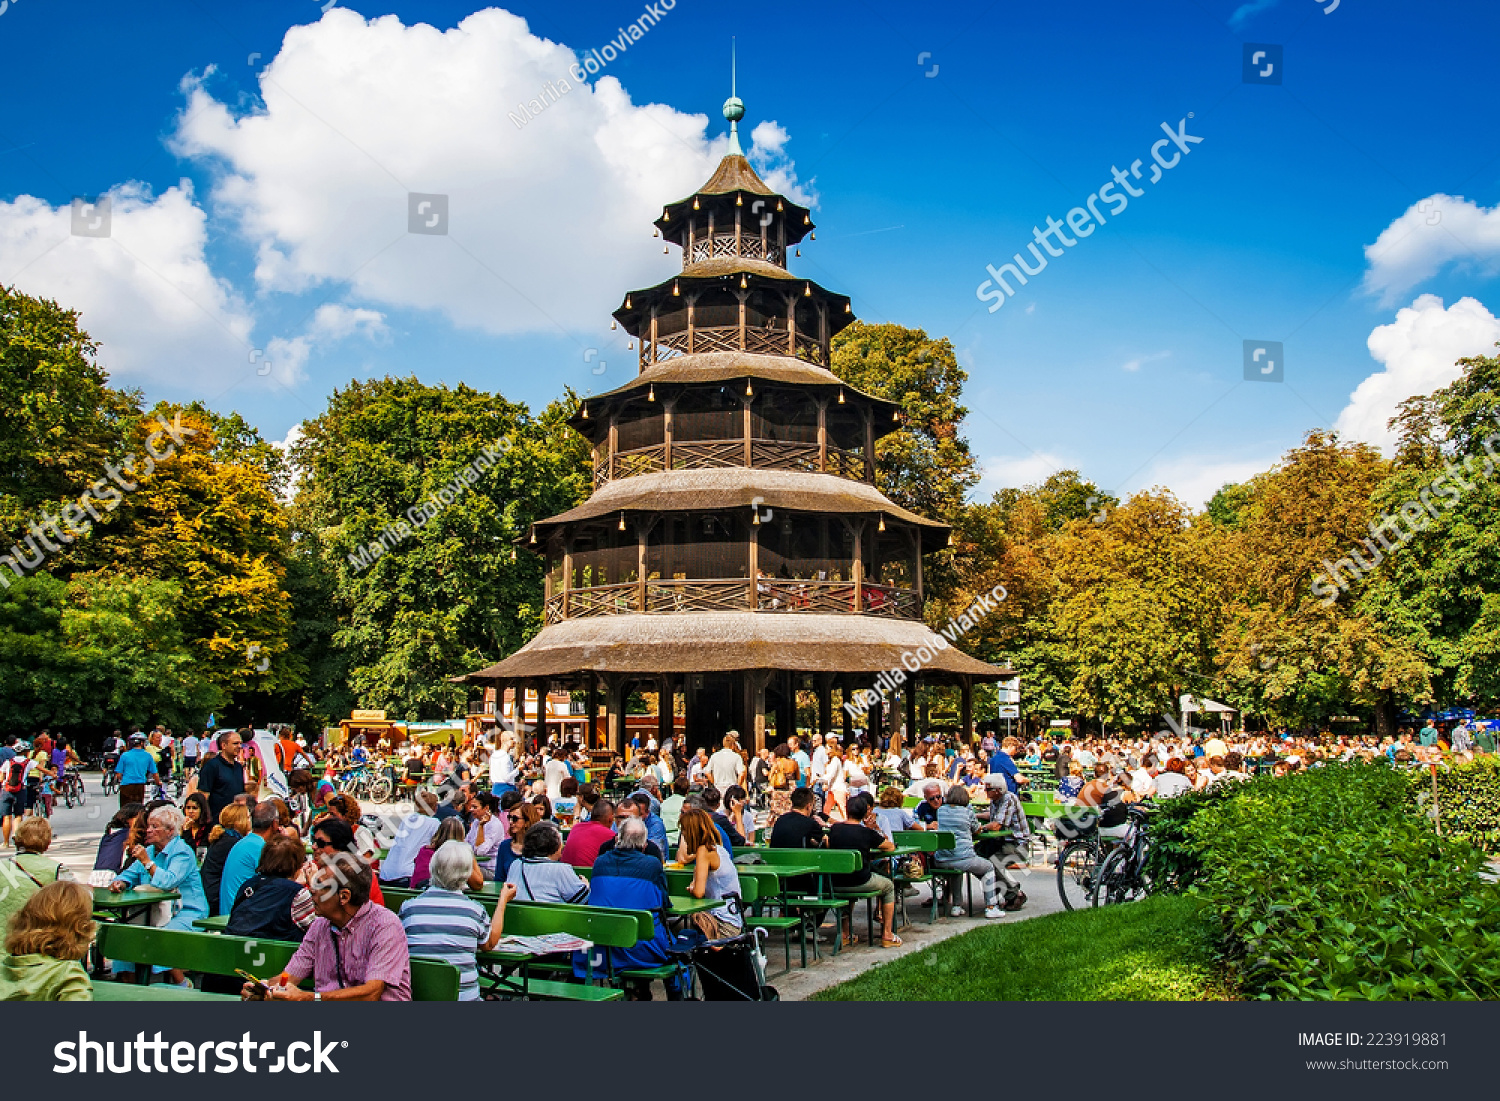 munich germany september 07 2014 biergarten near chinese tower in english garden on. Black Bedroom Furniture Sets. Home Design Ideas